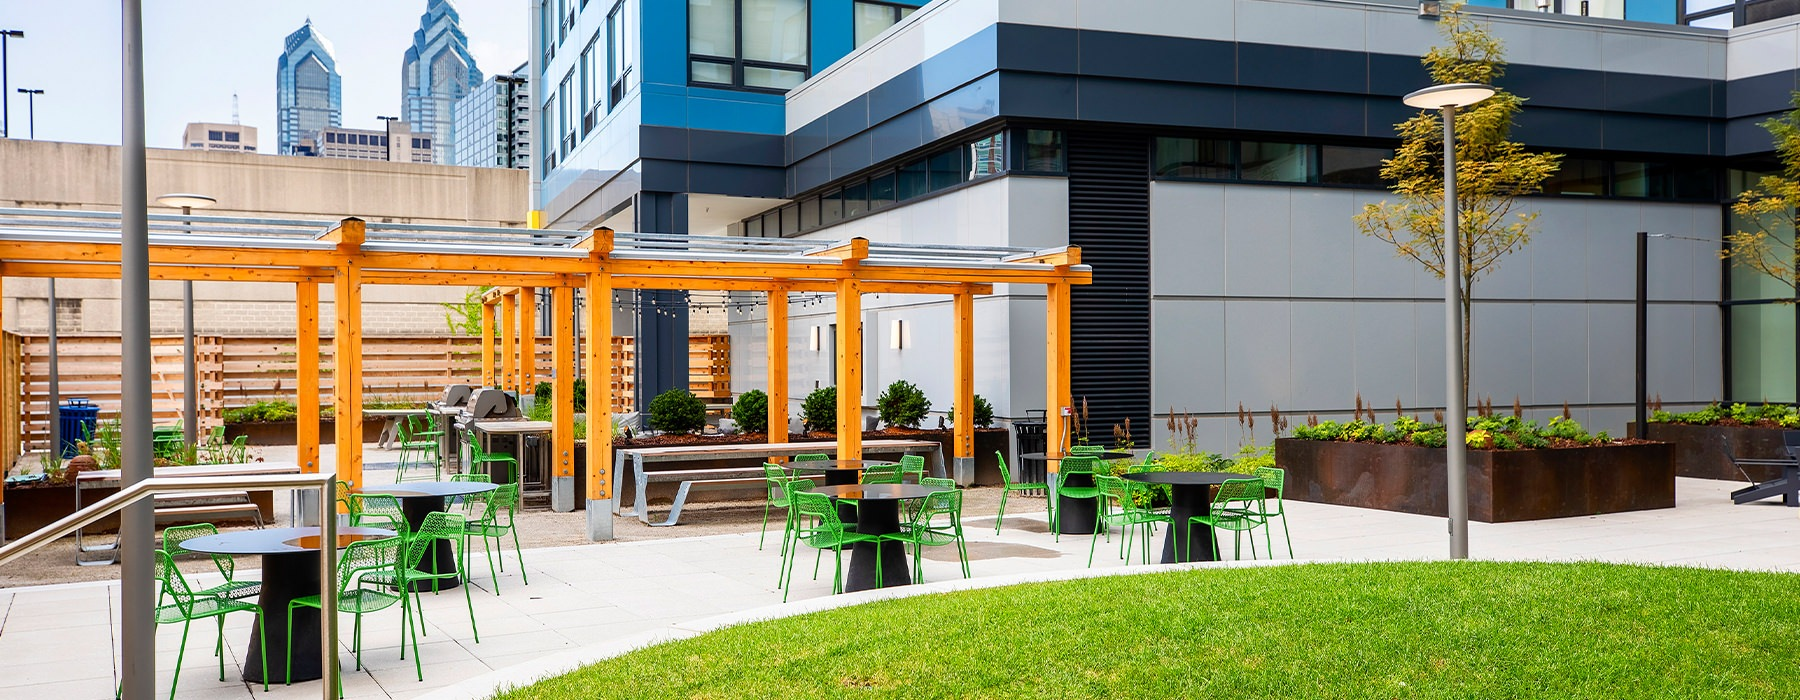 Outdoor Community Space with table and chair seating